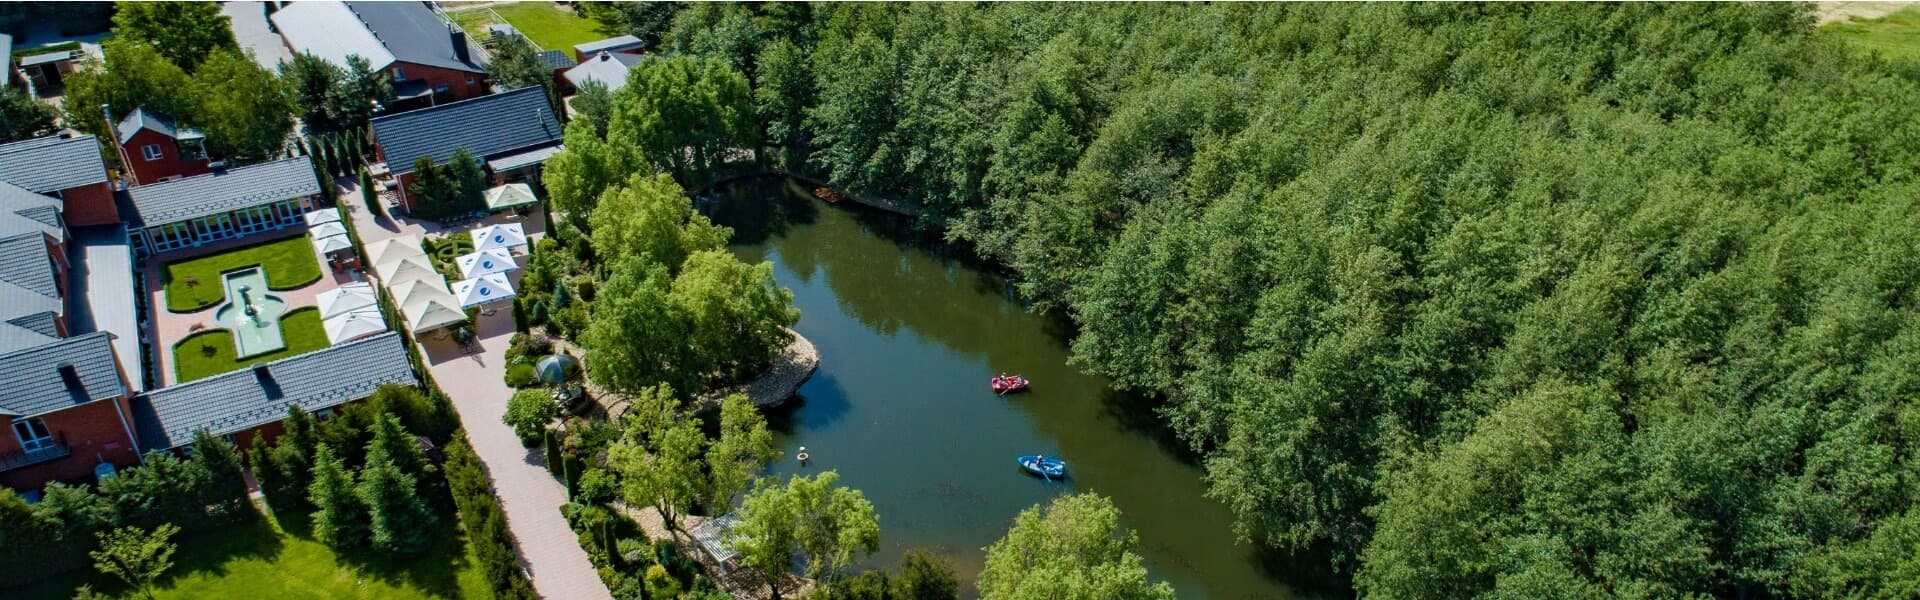 Leisure in the Forest of Kherson Region